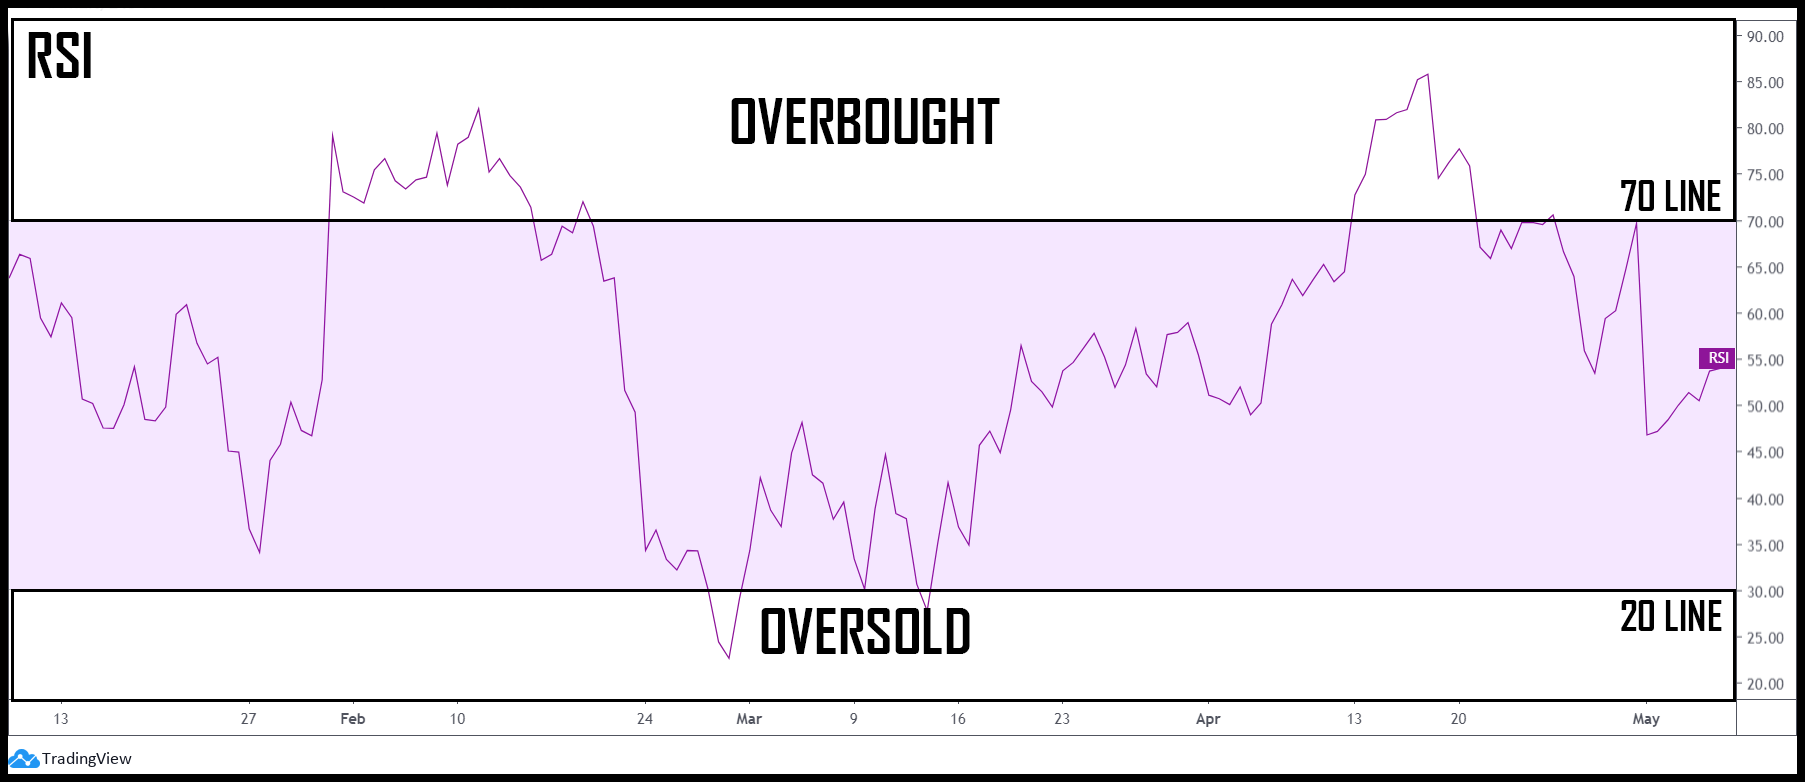 RSI overbought oversold image 2